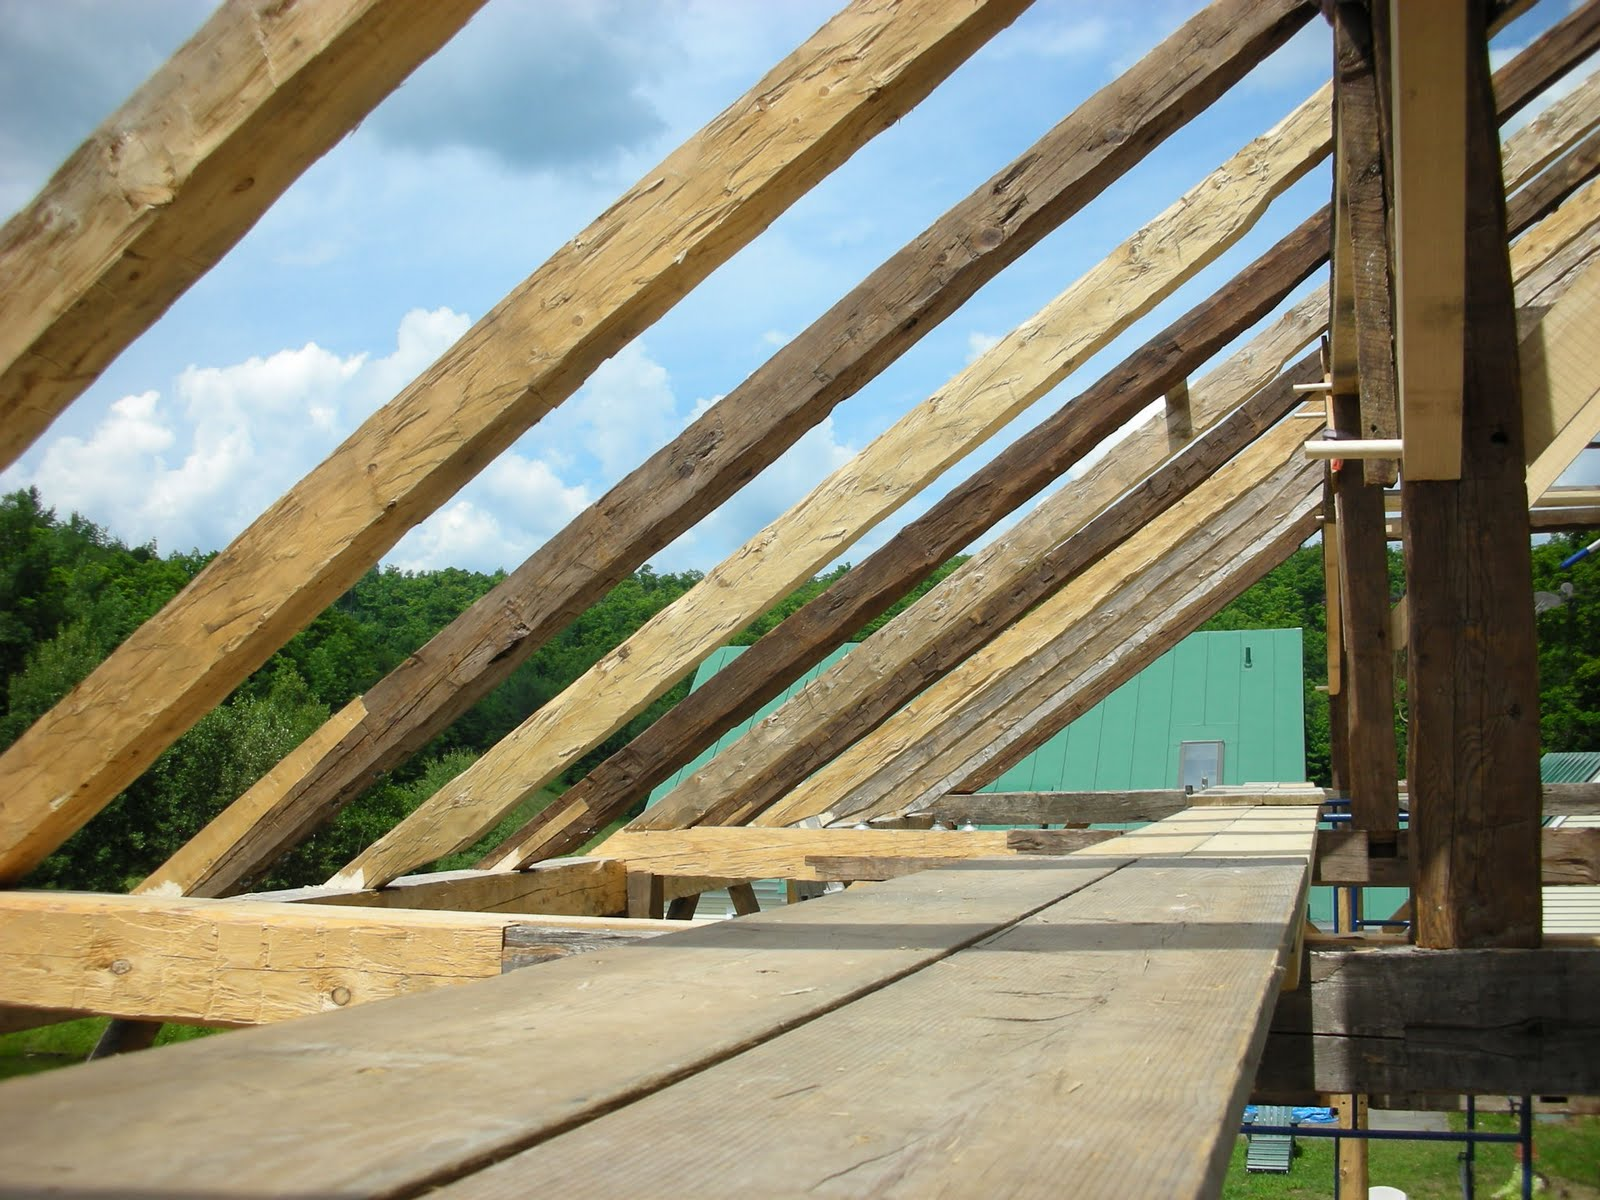 Since there was no indication of the original rafter position, we staggered new rafters with those that had been repaired.